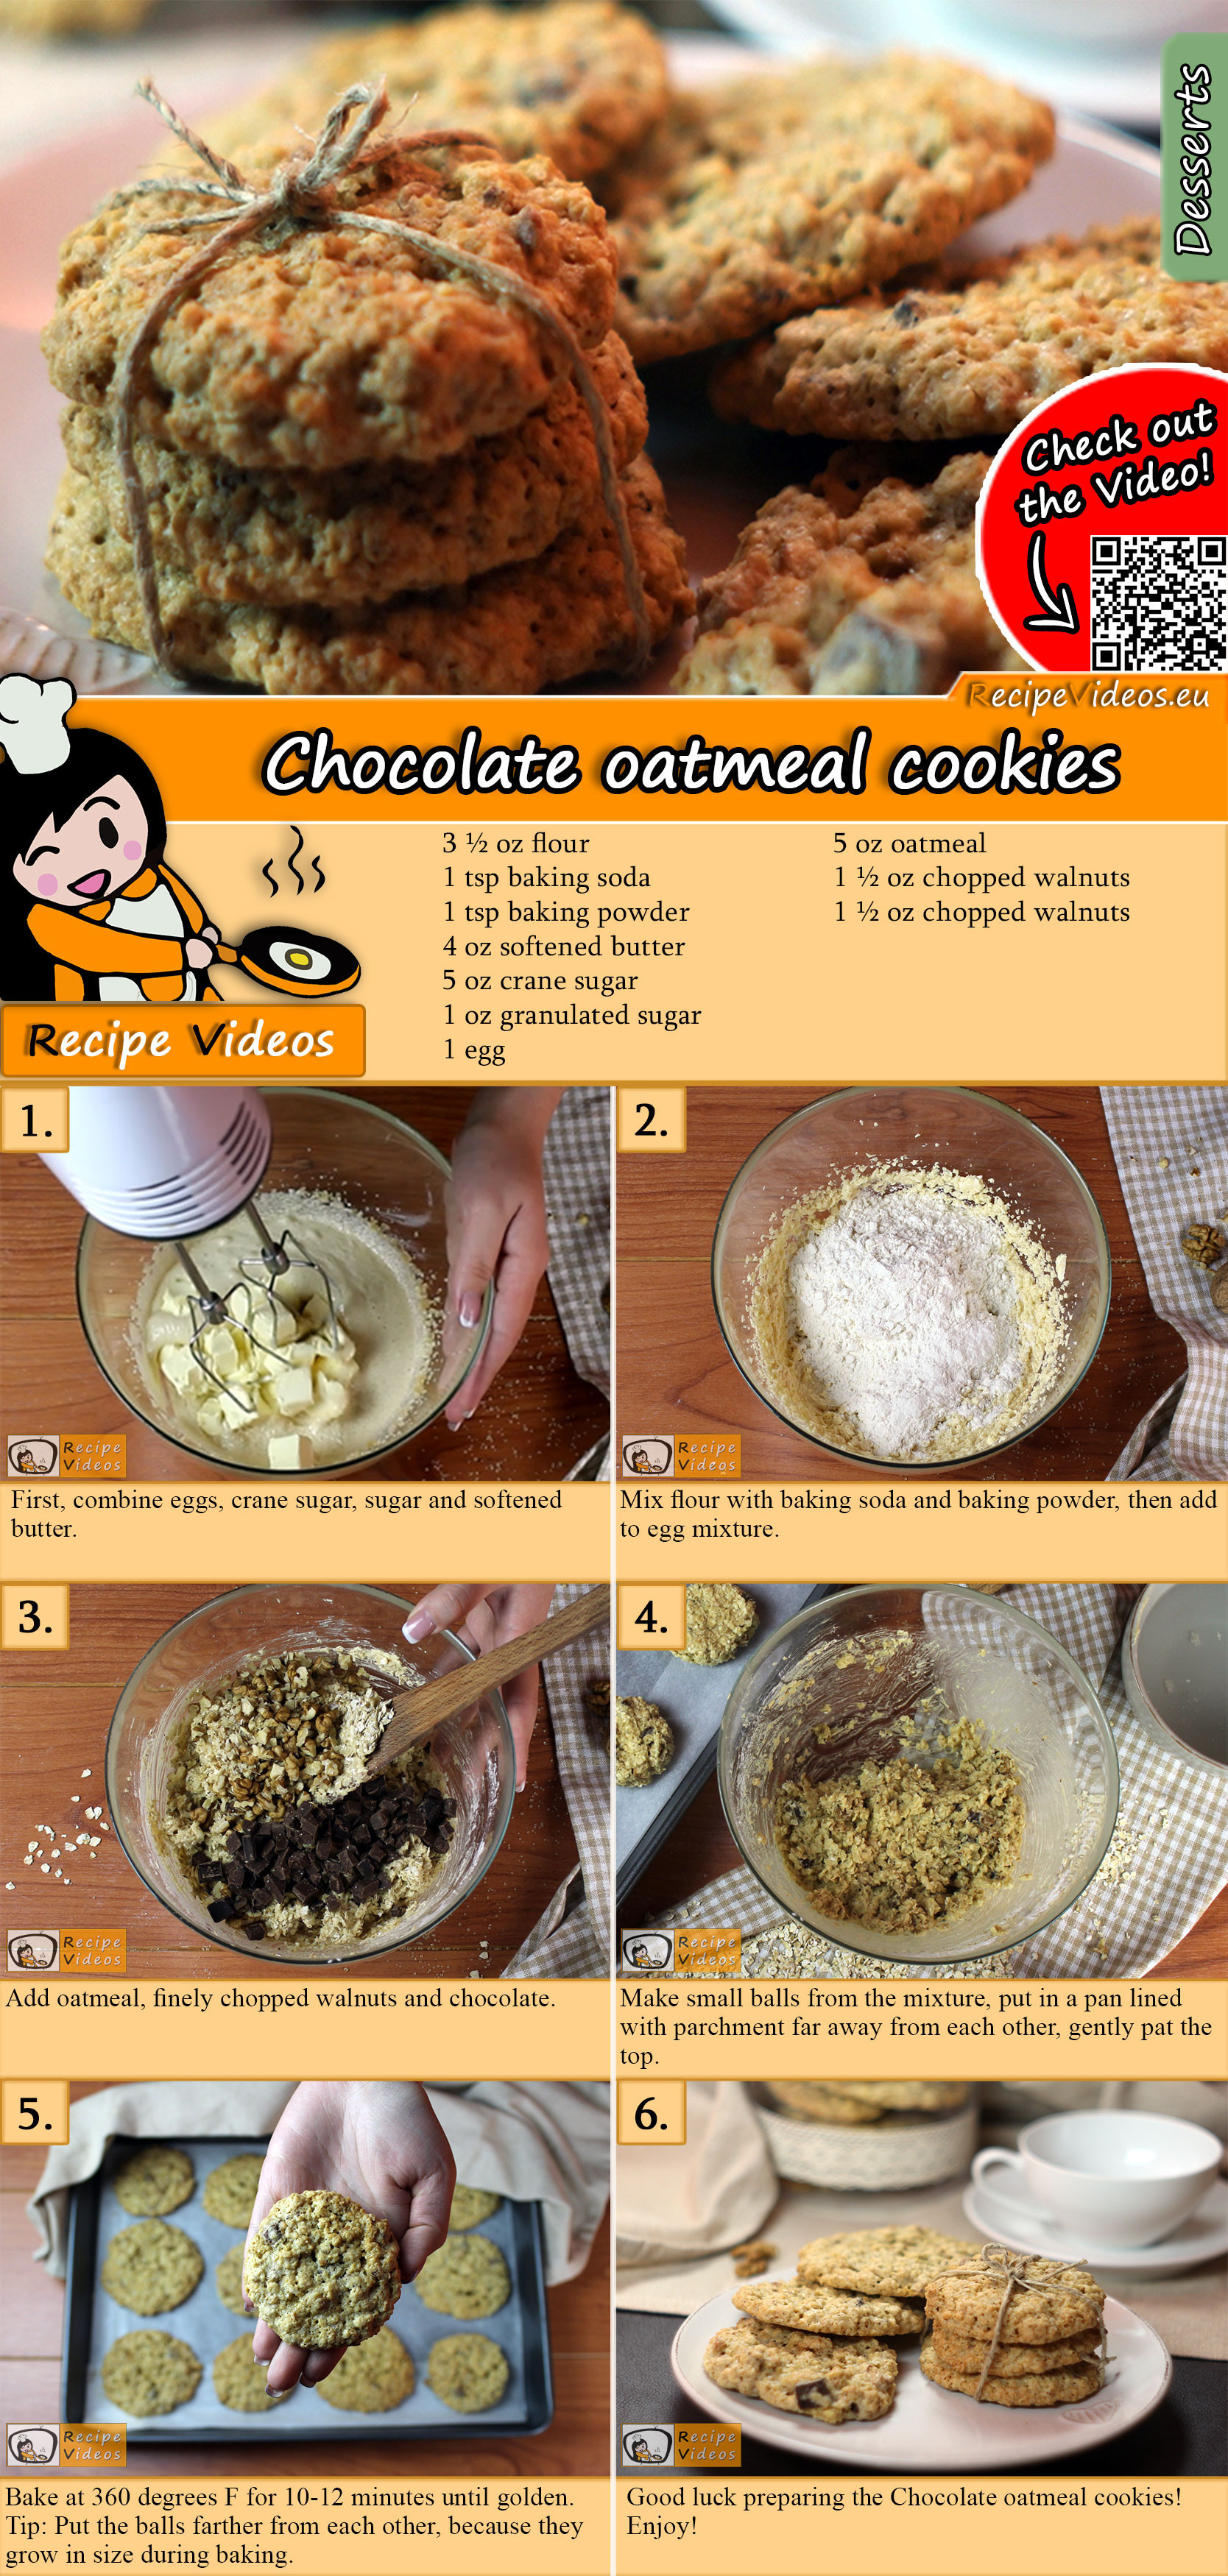 Chocolate oatmeal cookies recipe with video